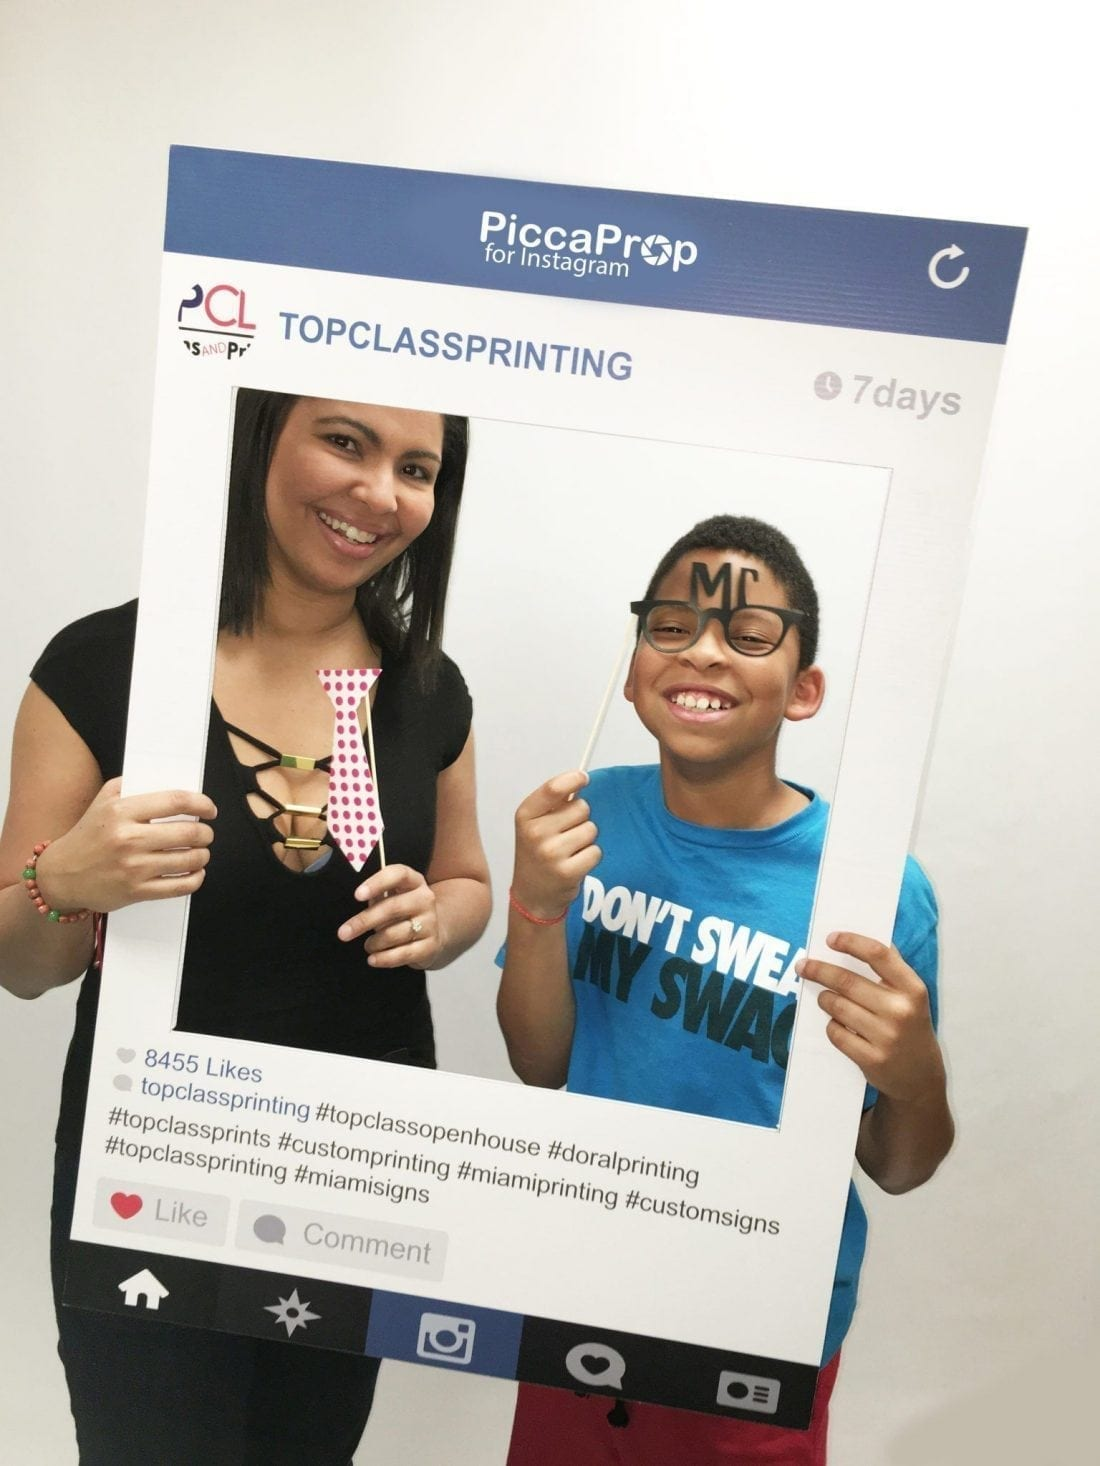 Wedding Photo Booth Props Instagram And Facebook Frames